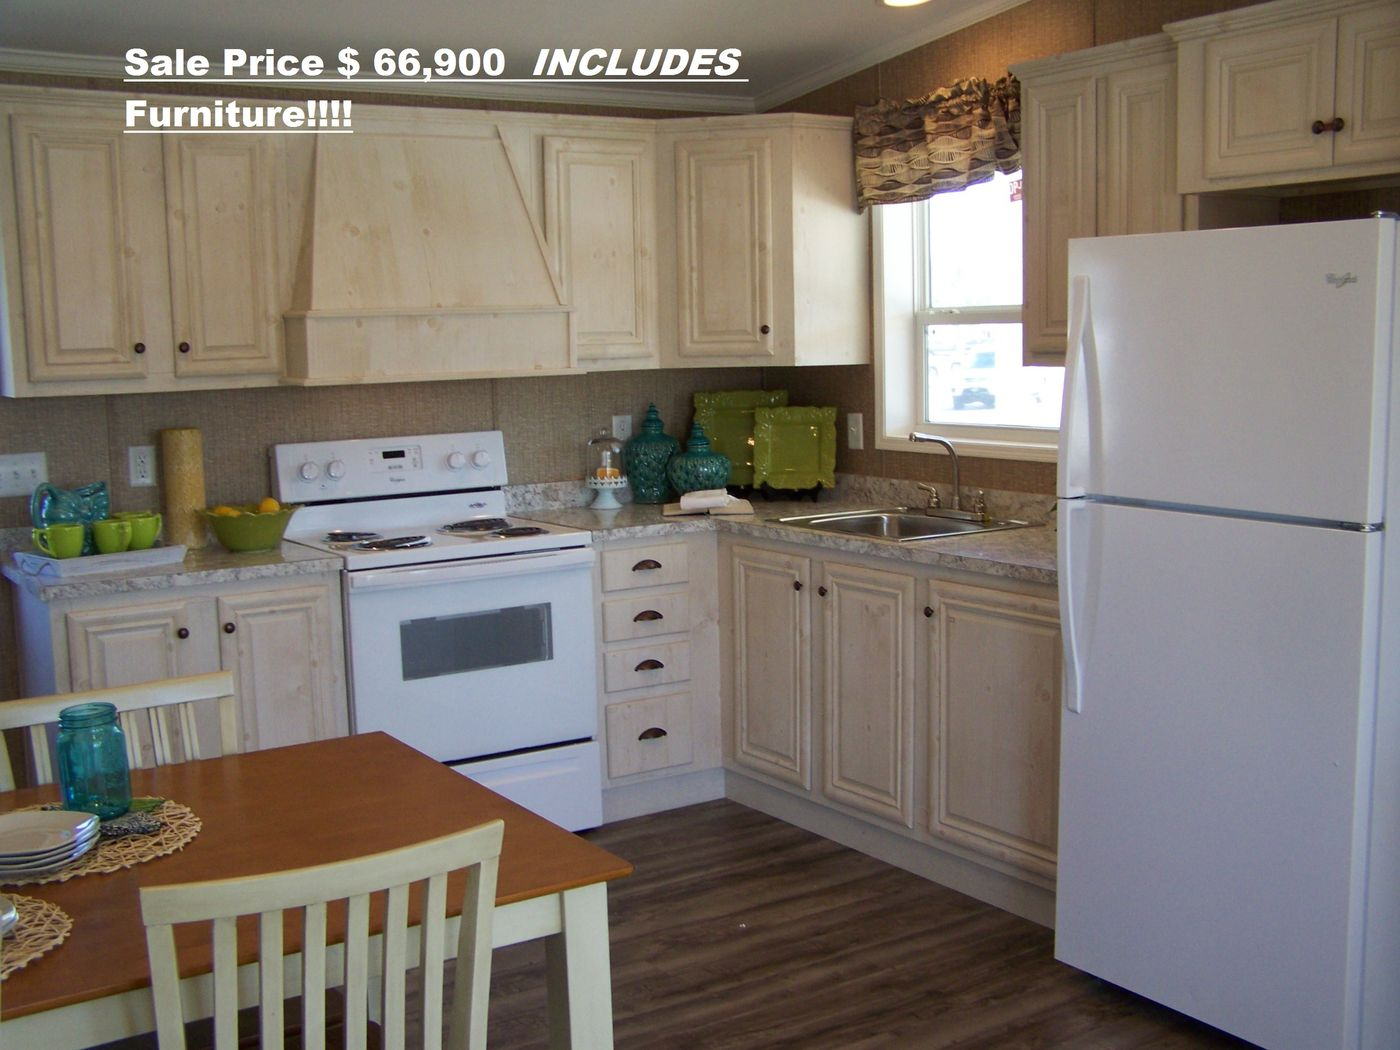 Save almost $17,000 and Furniture Included!!